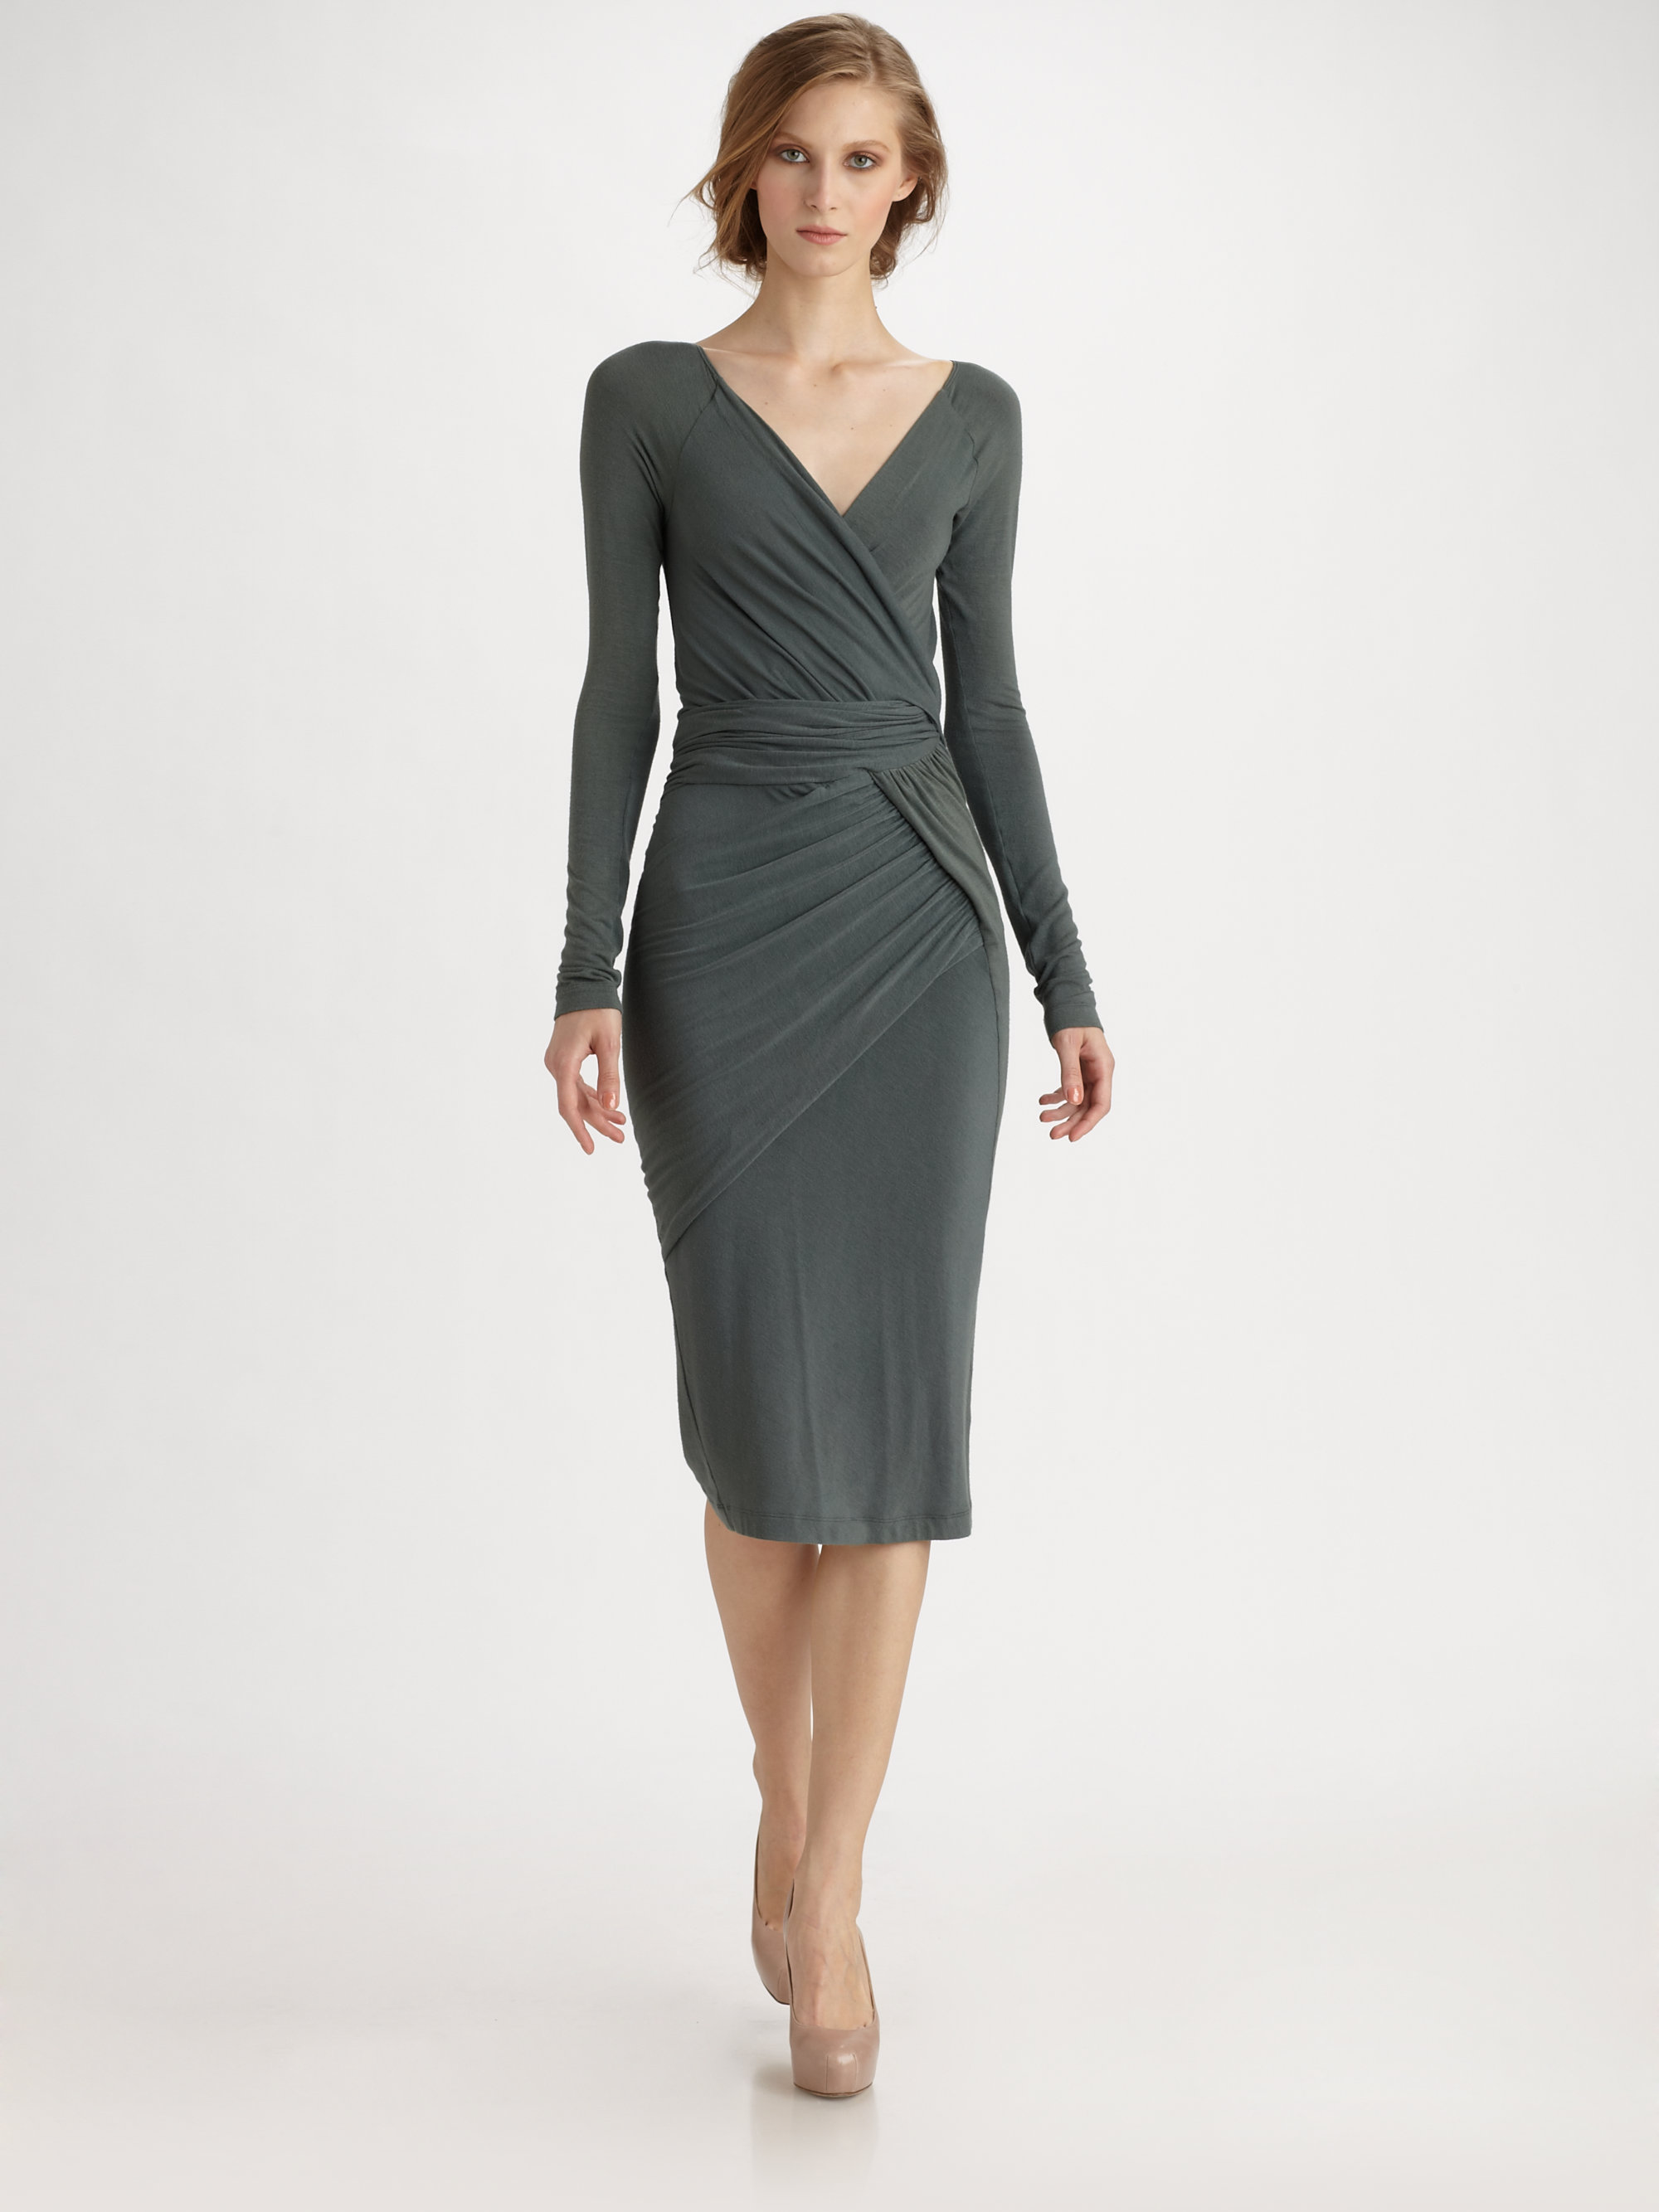 Donna karan new york ruched jersey dress in gray solstice for Donna karen new york